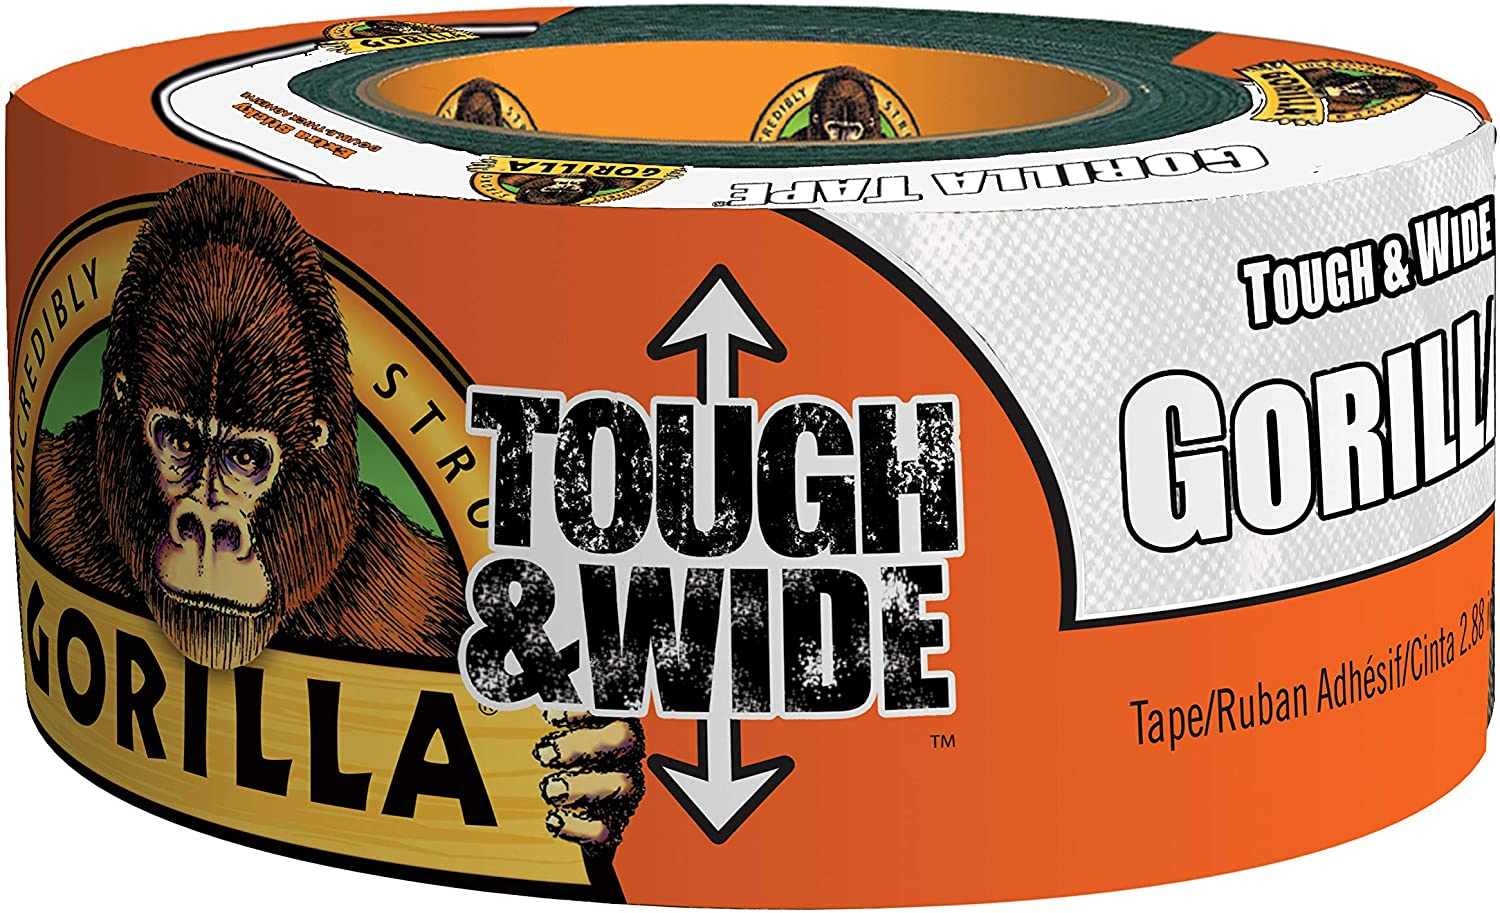 Gorilla 6025302 White Tough & Wide Duct Tape, 1-Pack